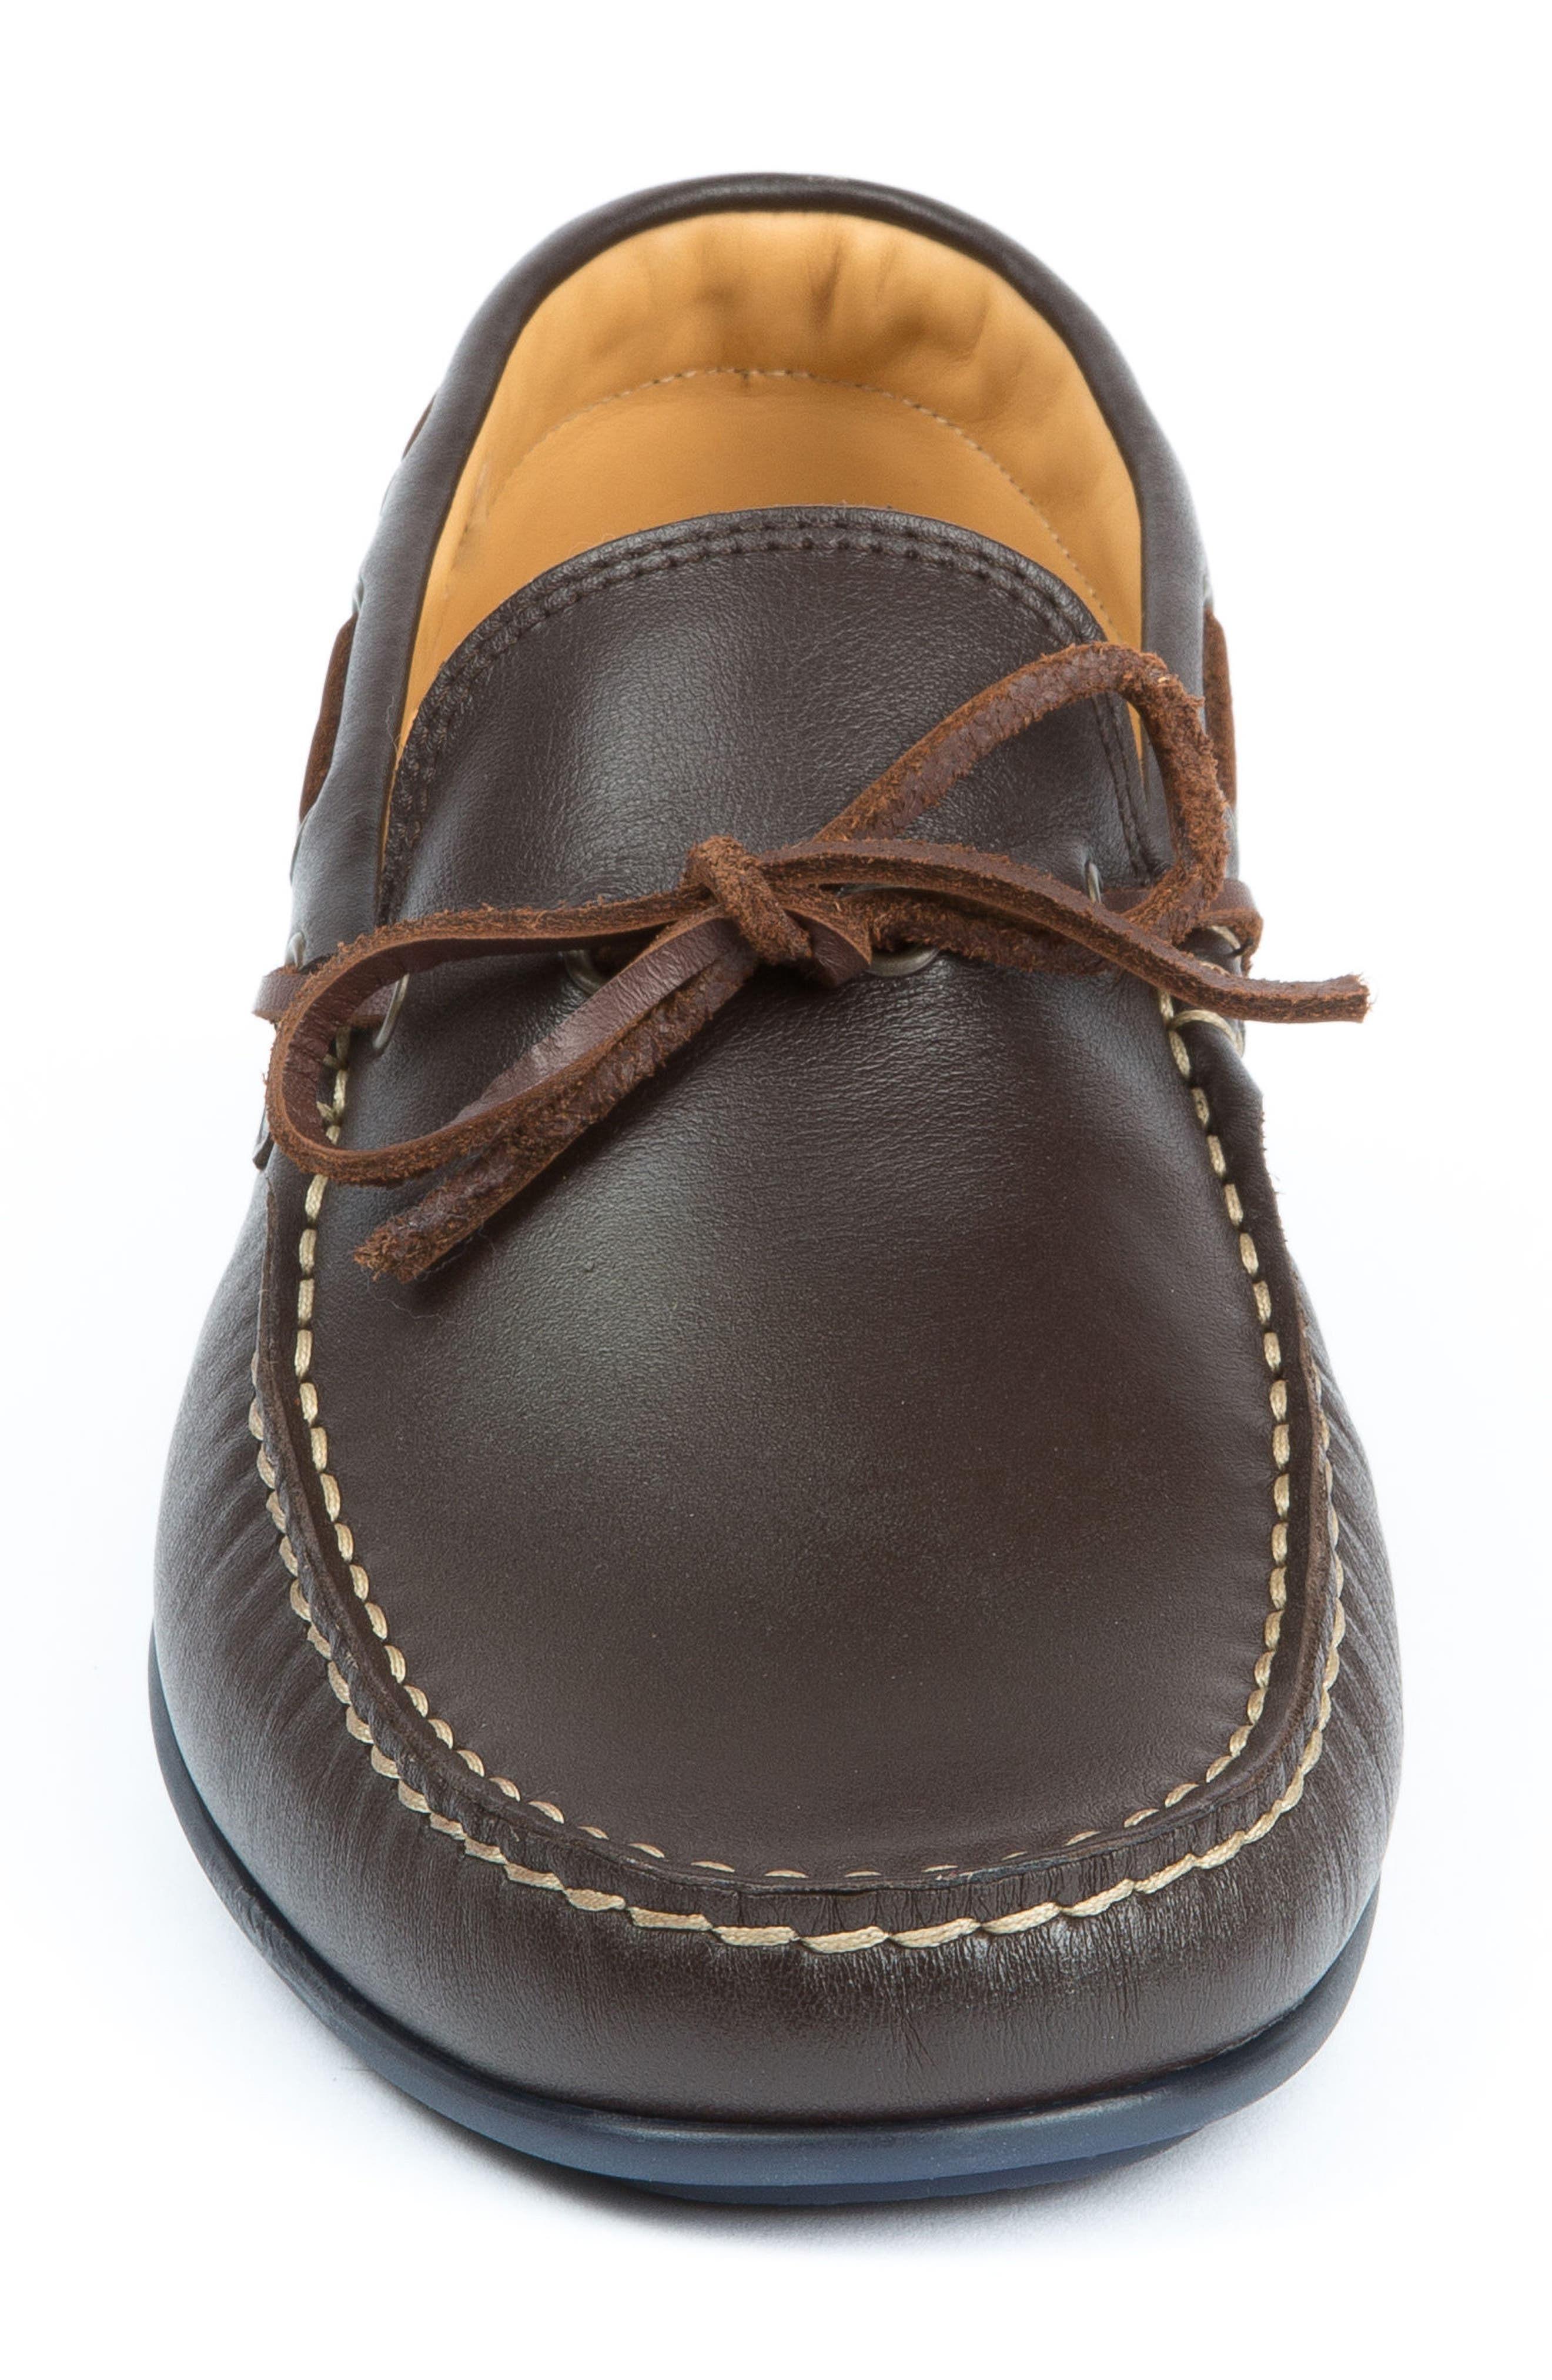 Fillmores Loafer,                             Alternate thumbnail 4, color,                             BROWN LEATHER/ NATURAL/ NAVY